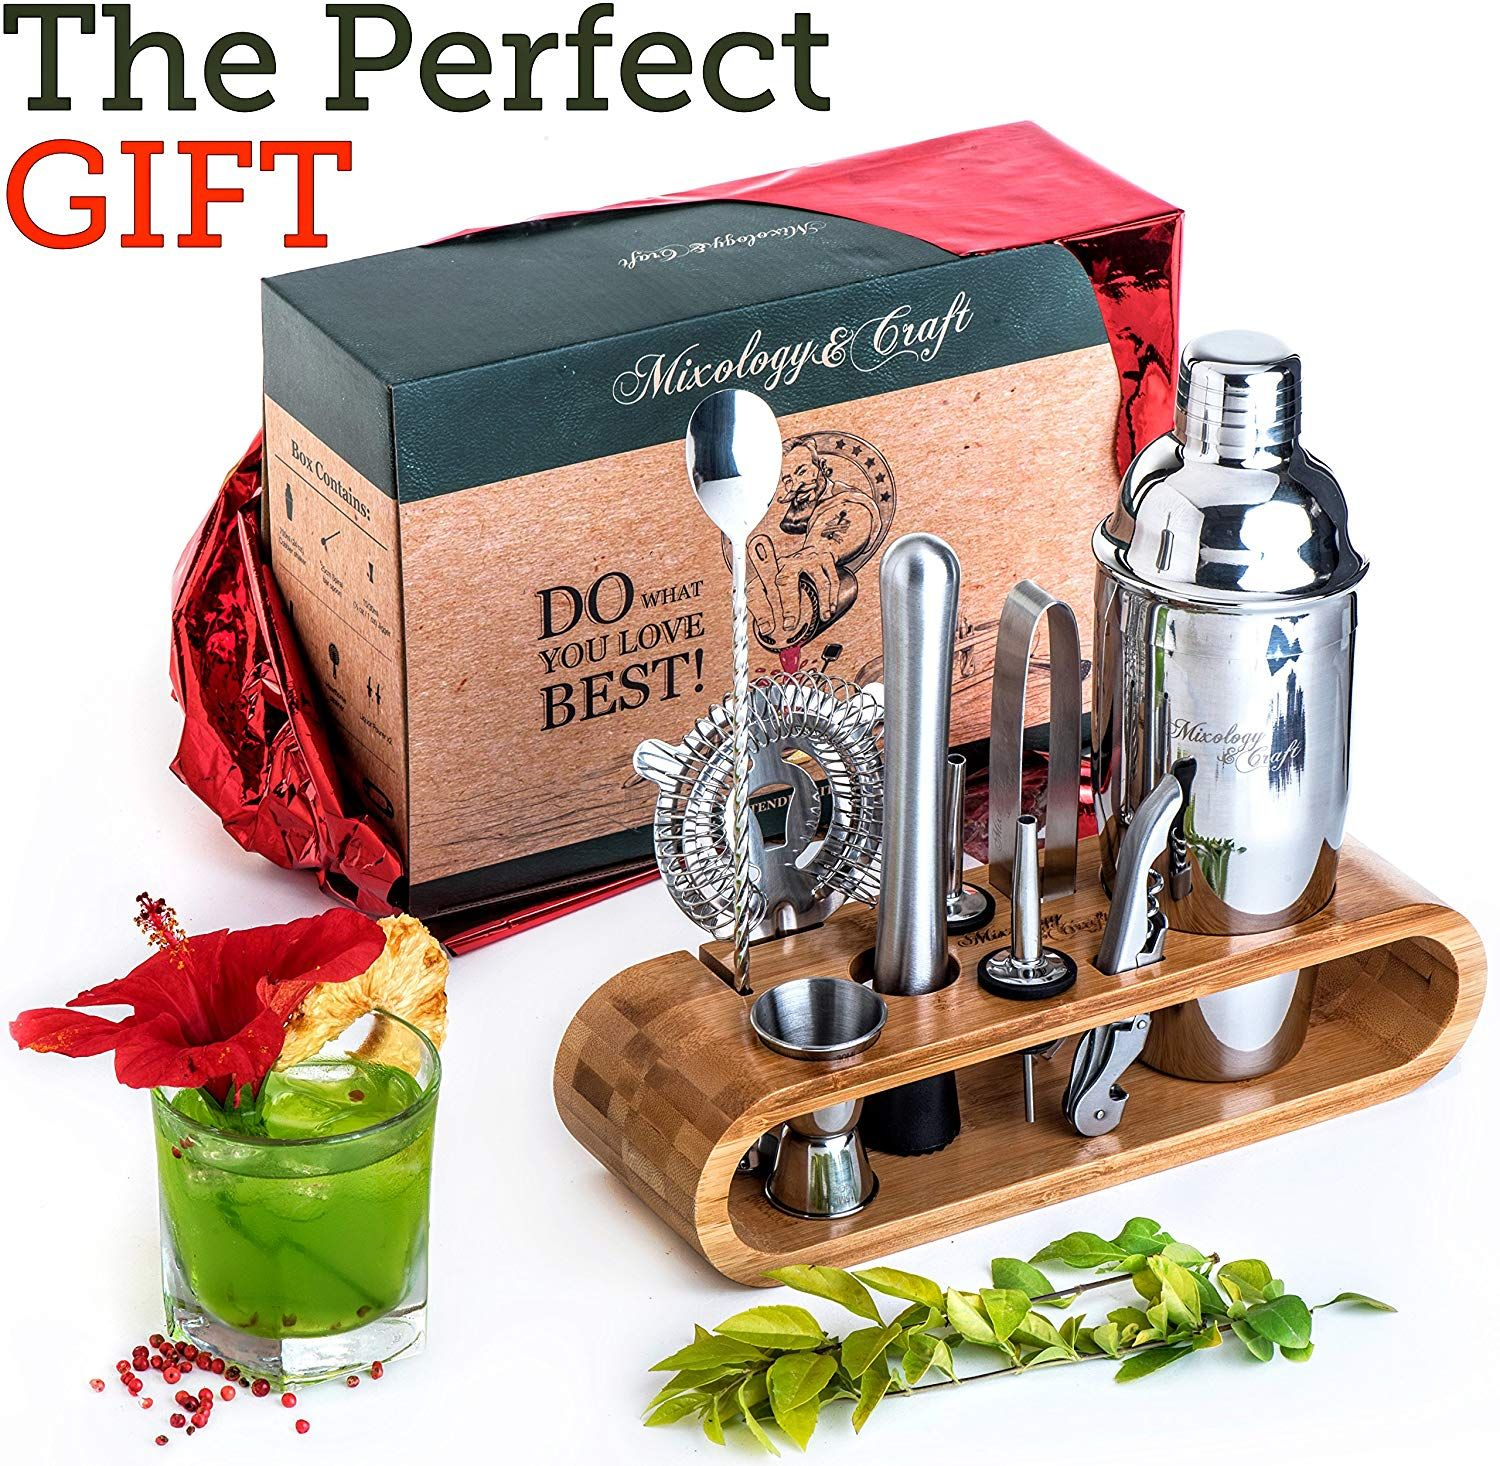 Bartender Kit Perfect Home Bartending Kit and Cocktail Shaker Set for an Awesome Drink Mixing Experience 10-Piece Bar Tool Set with Stylish Bamboo Stand Exclusive Cocktail Recipes Bonus